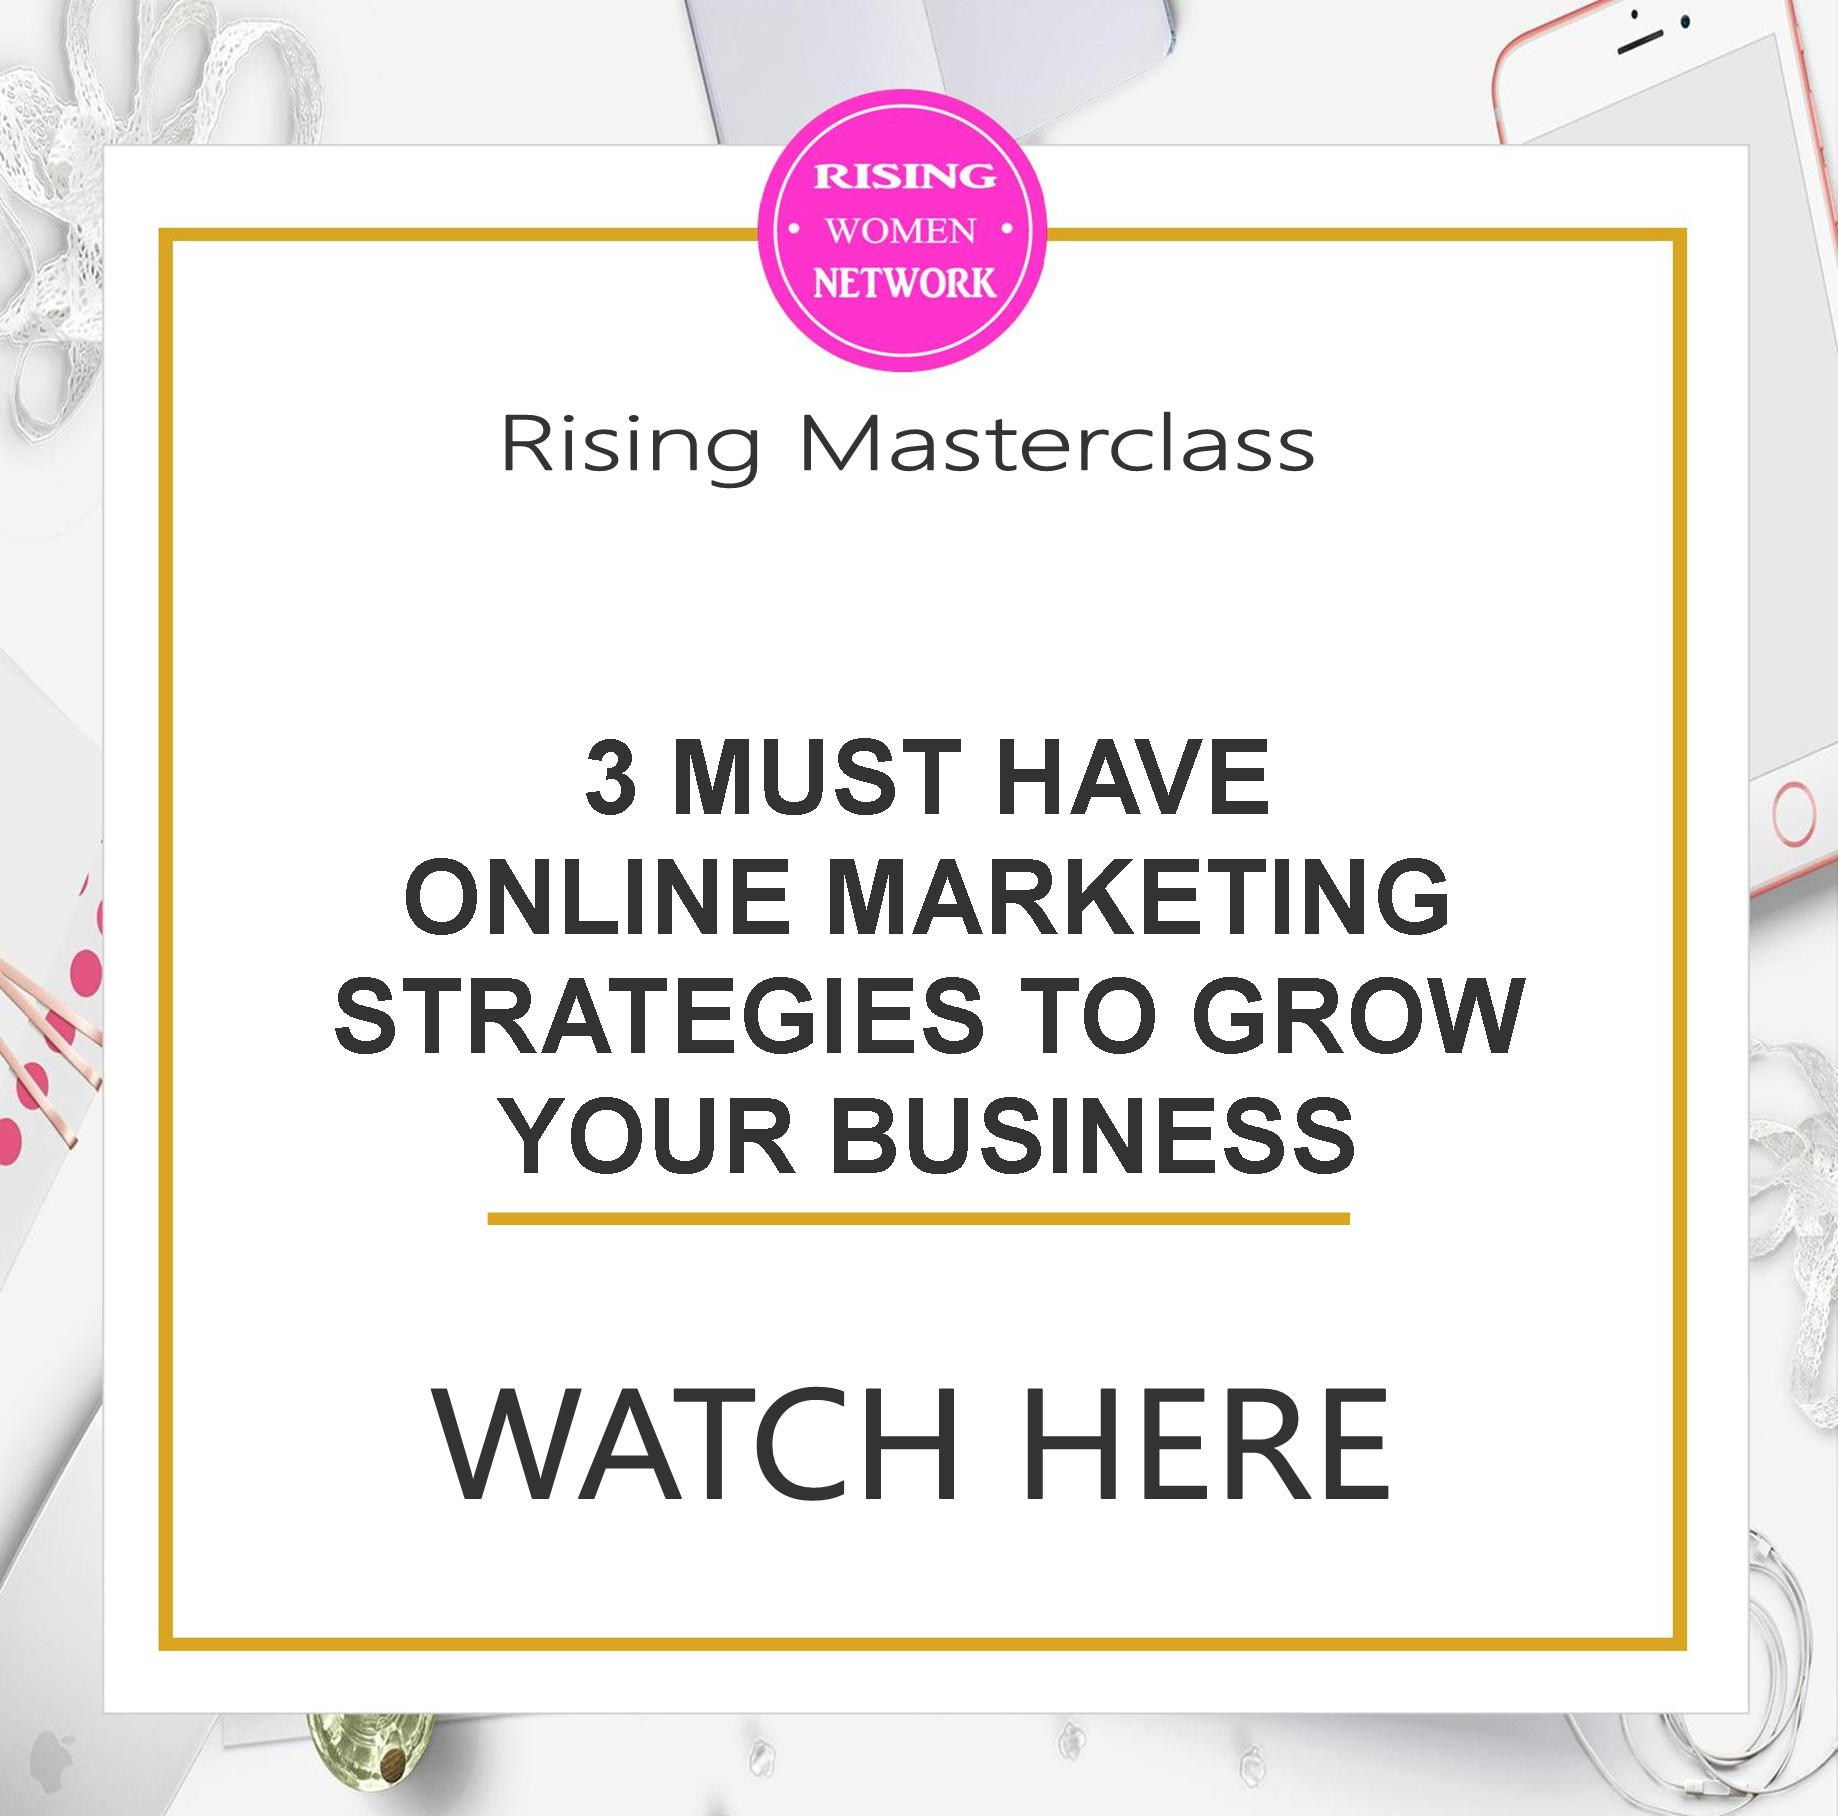 Spend some time testing this for your business, it may be your roadmap to success too. In this episode I'll give 3 Must have online marketing strategies.